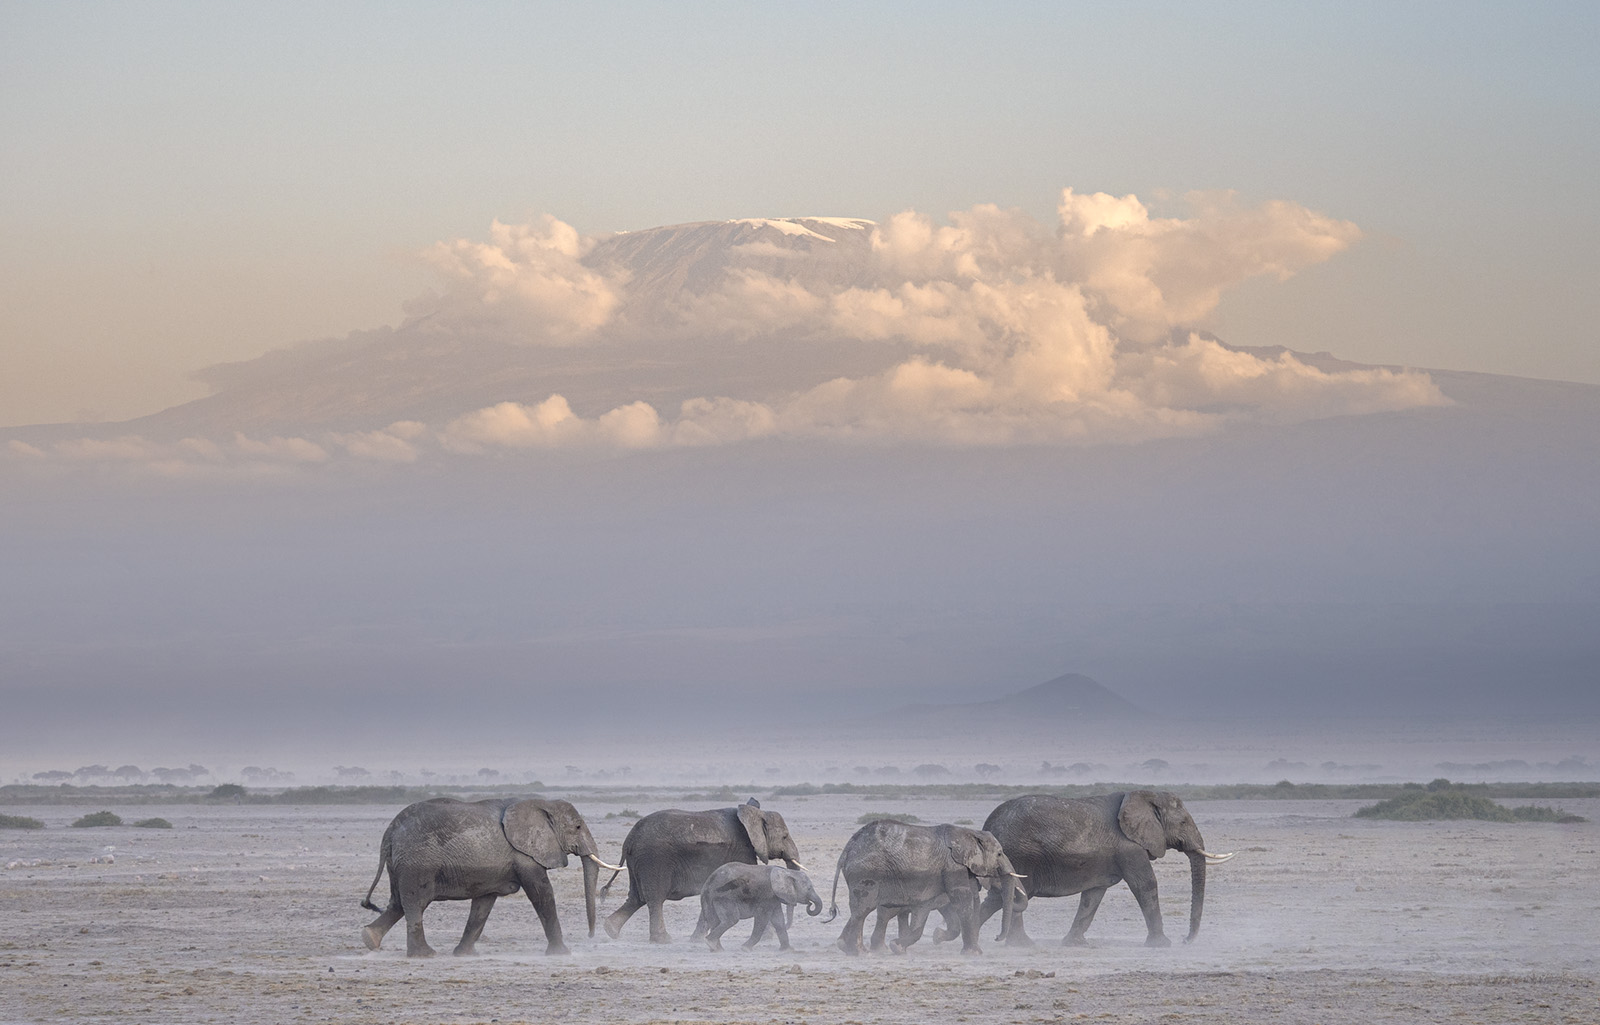 2020 Mara Extension: Amboseli's Elephants and Views of Mt. Kilimanjaro